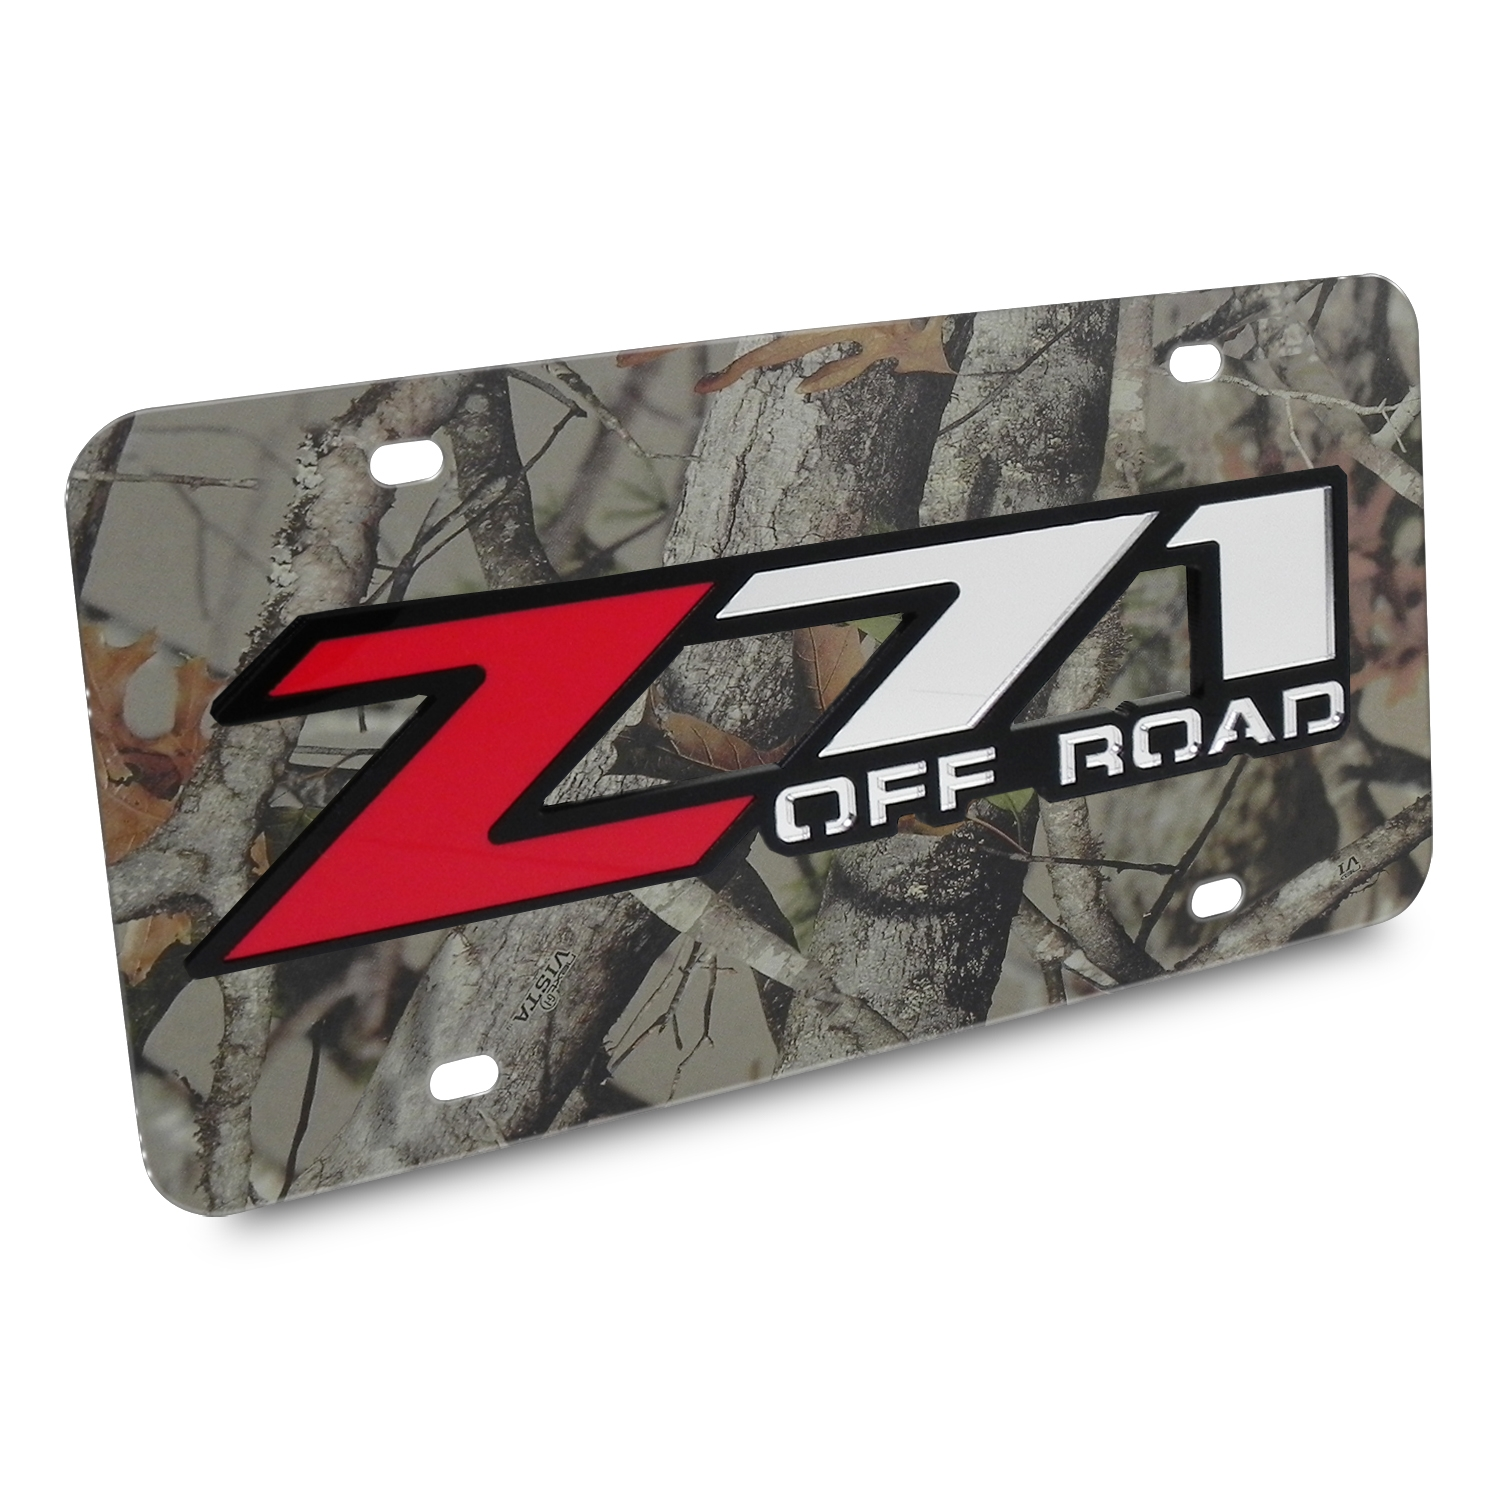 Chevrolet Z71 Offroad 3D Logo Camo Stainless Steel License Plate